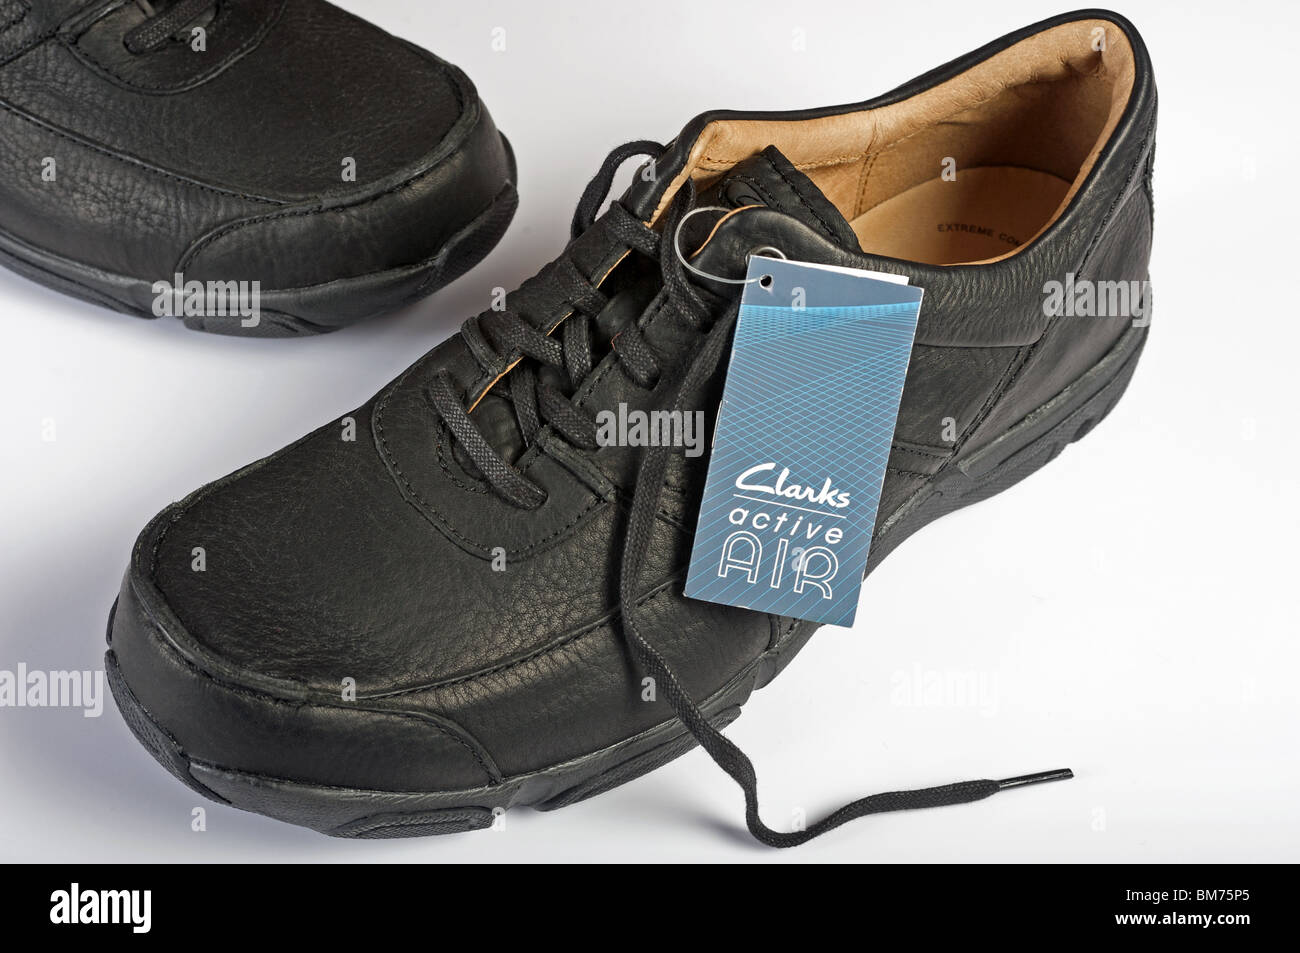 Photo Stock Alamy Active Clarks 29661693 Shoes Air qwtCzf7I